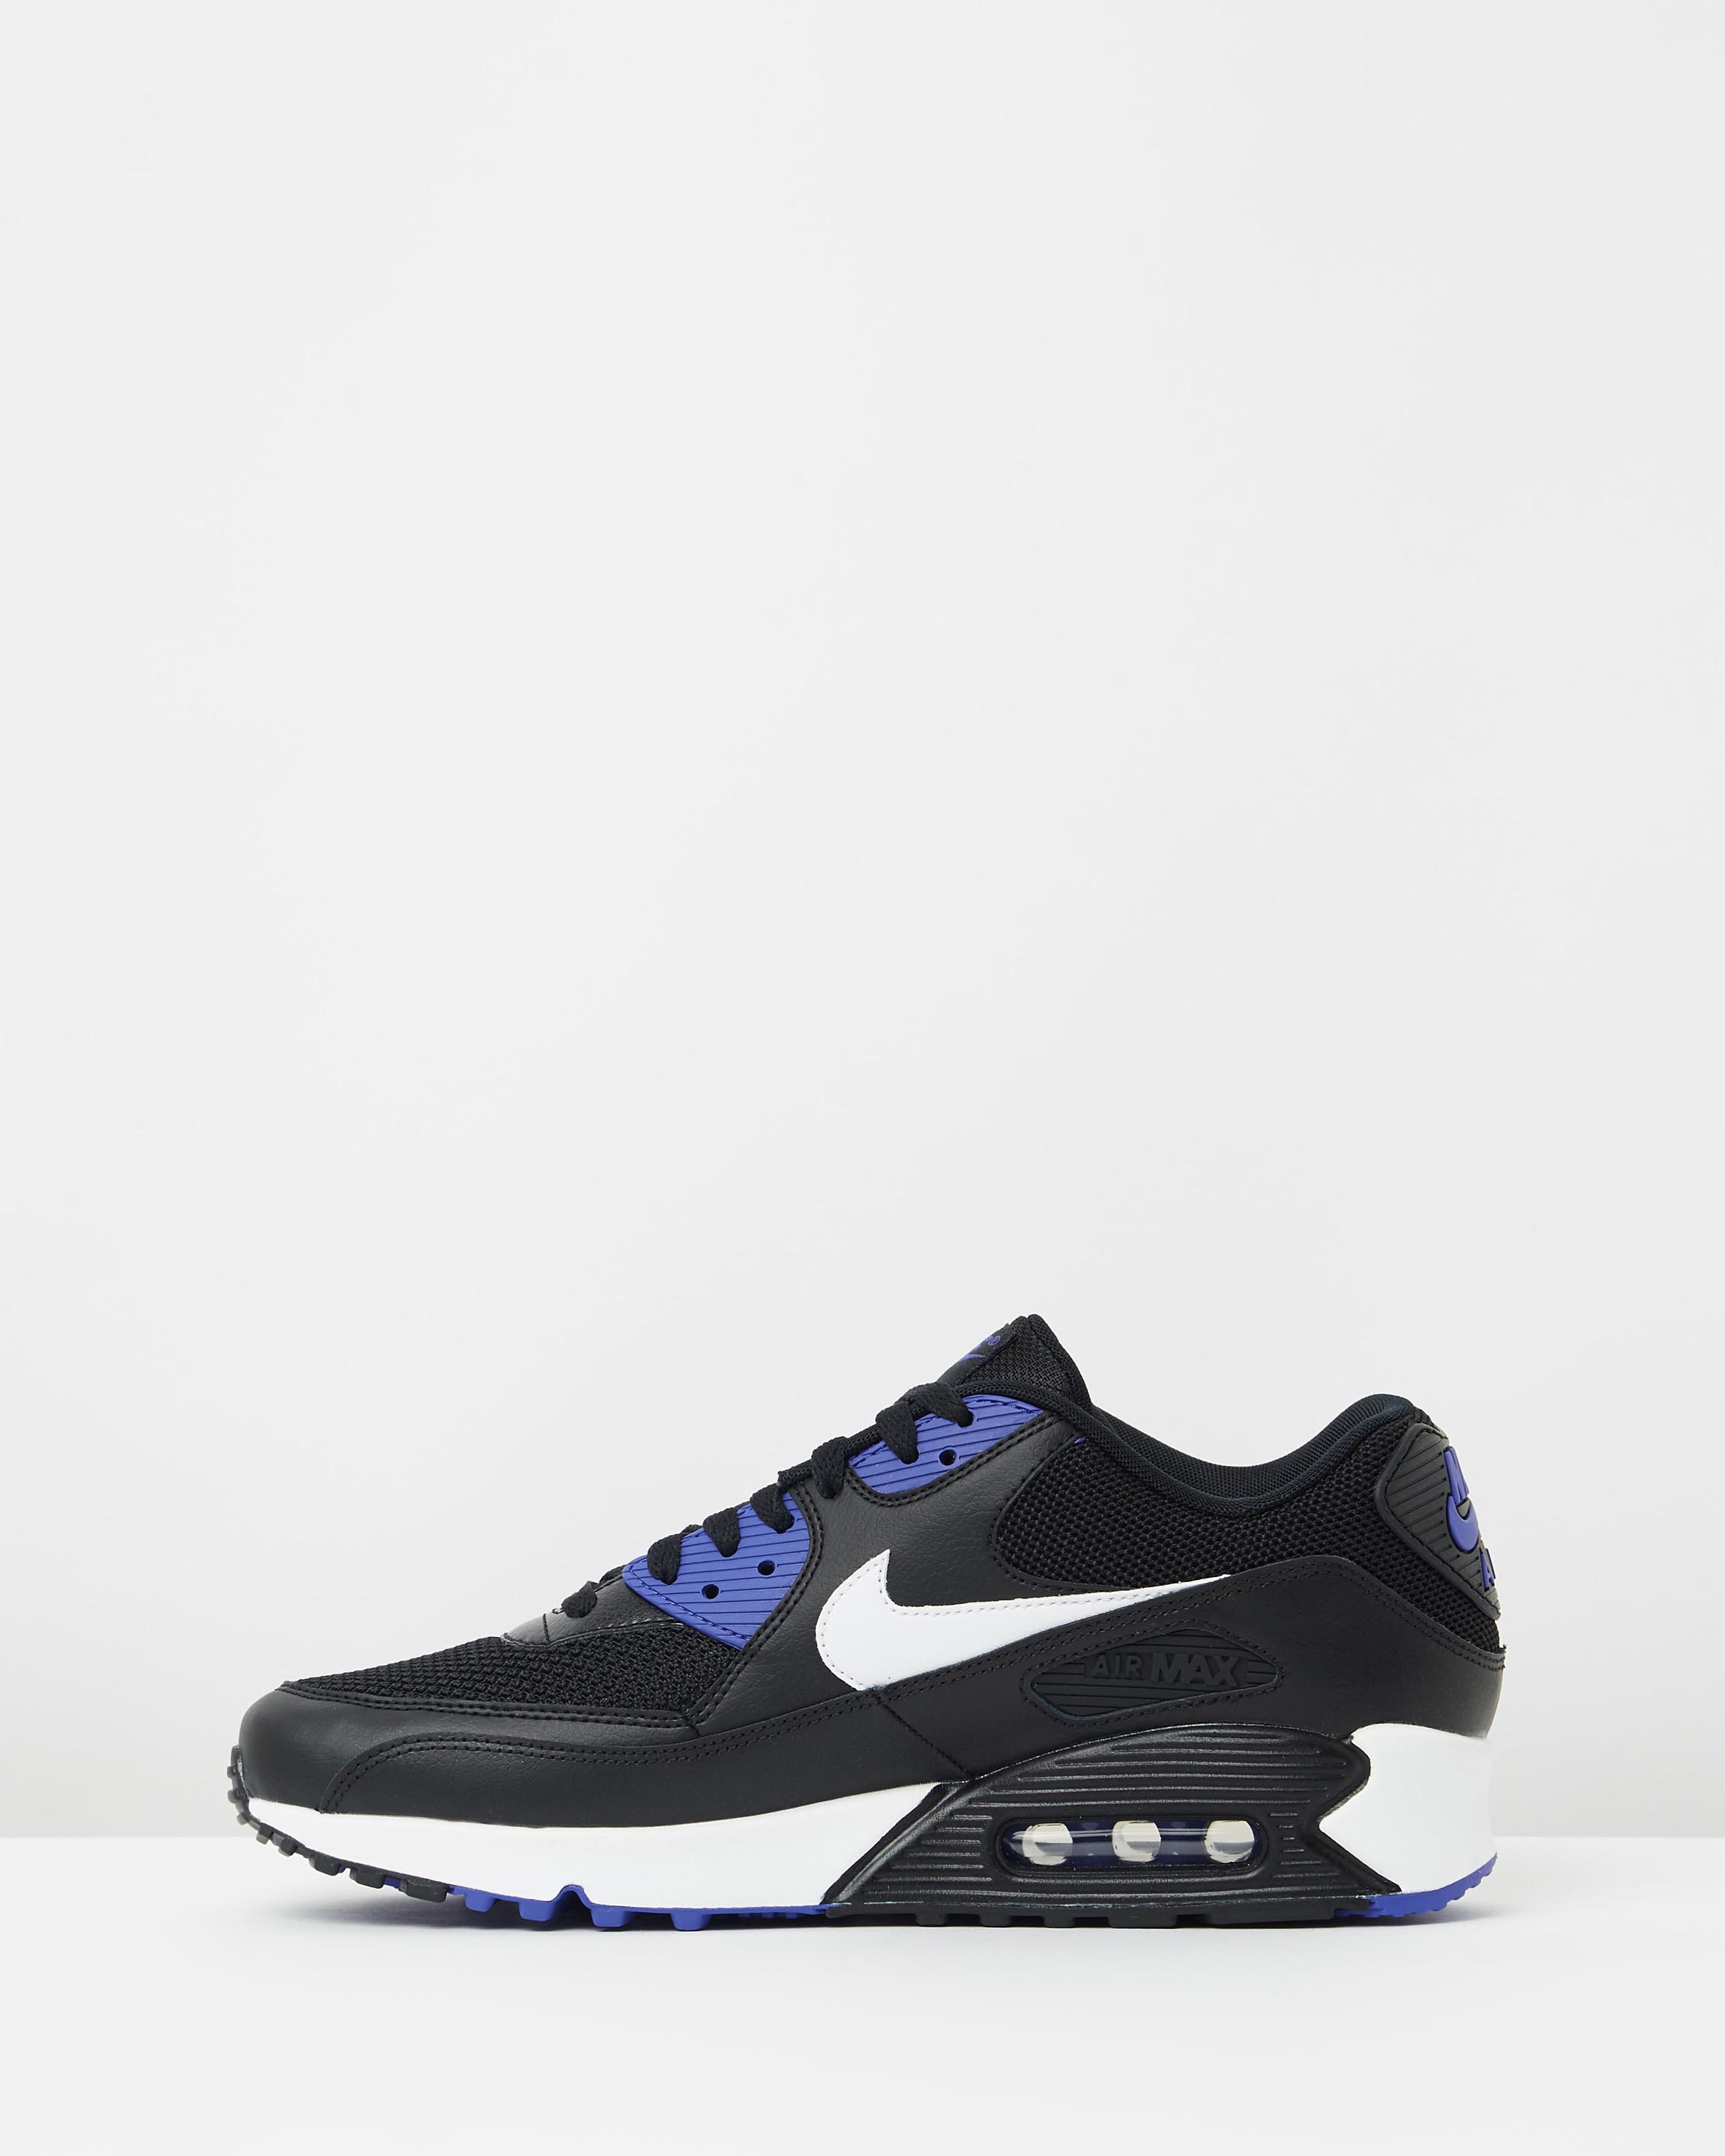 sports shoes 49fdd dc66d ... Nike Air Max 90 Essential Black White Persian Violet 3 ...